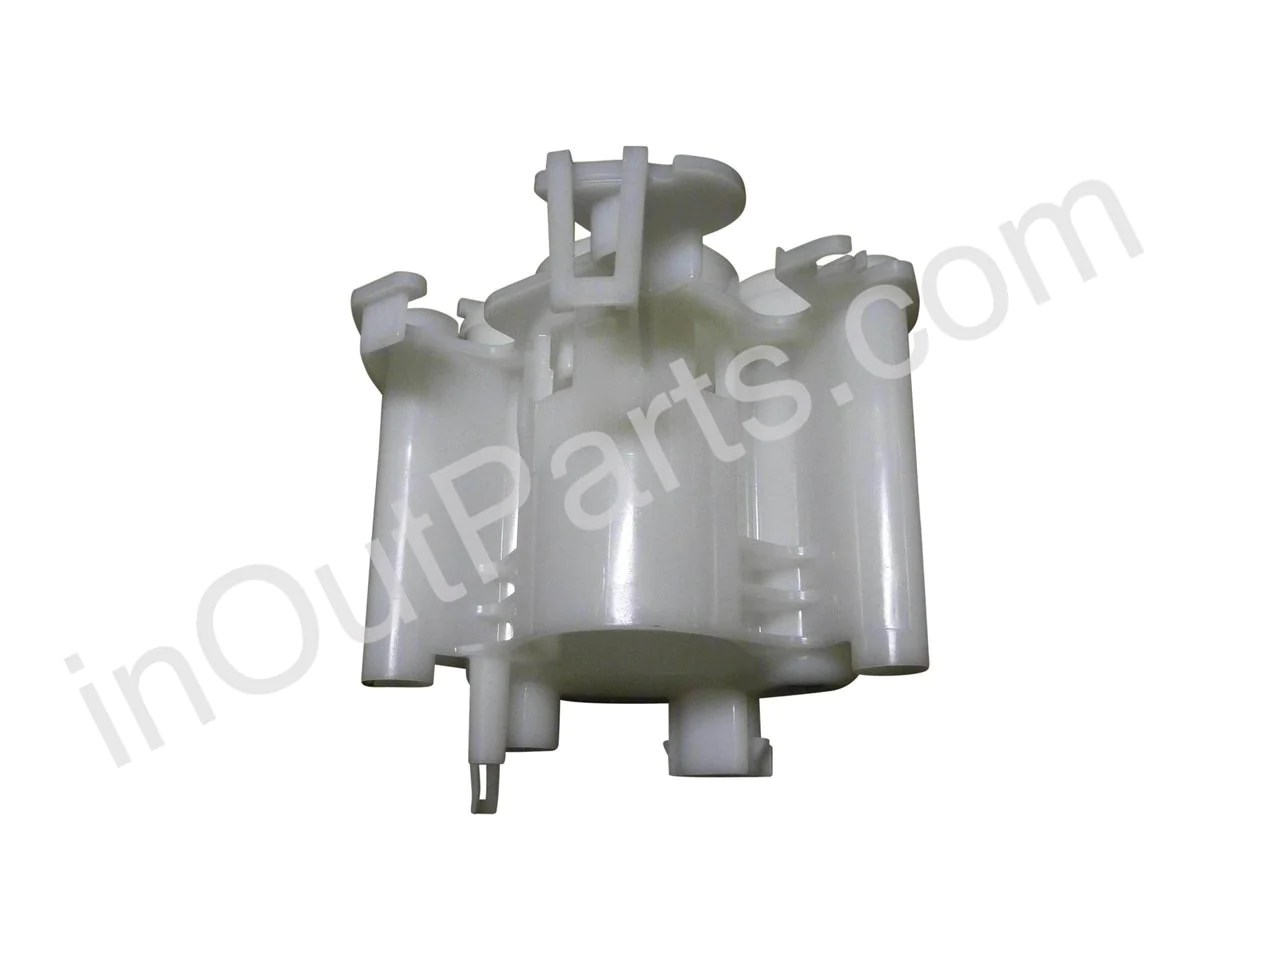 hight resolution of fuel filter fits lexus rx300 rx330 rx350 2003 2004 2005 2006 inout parts